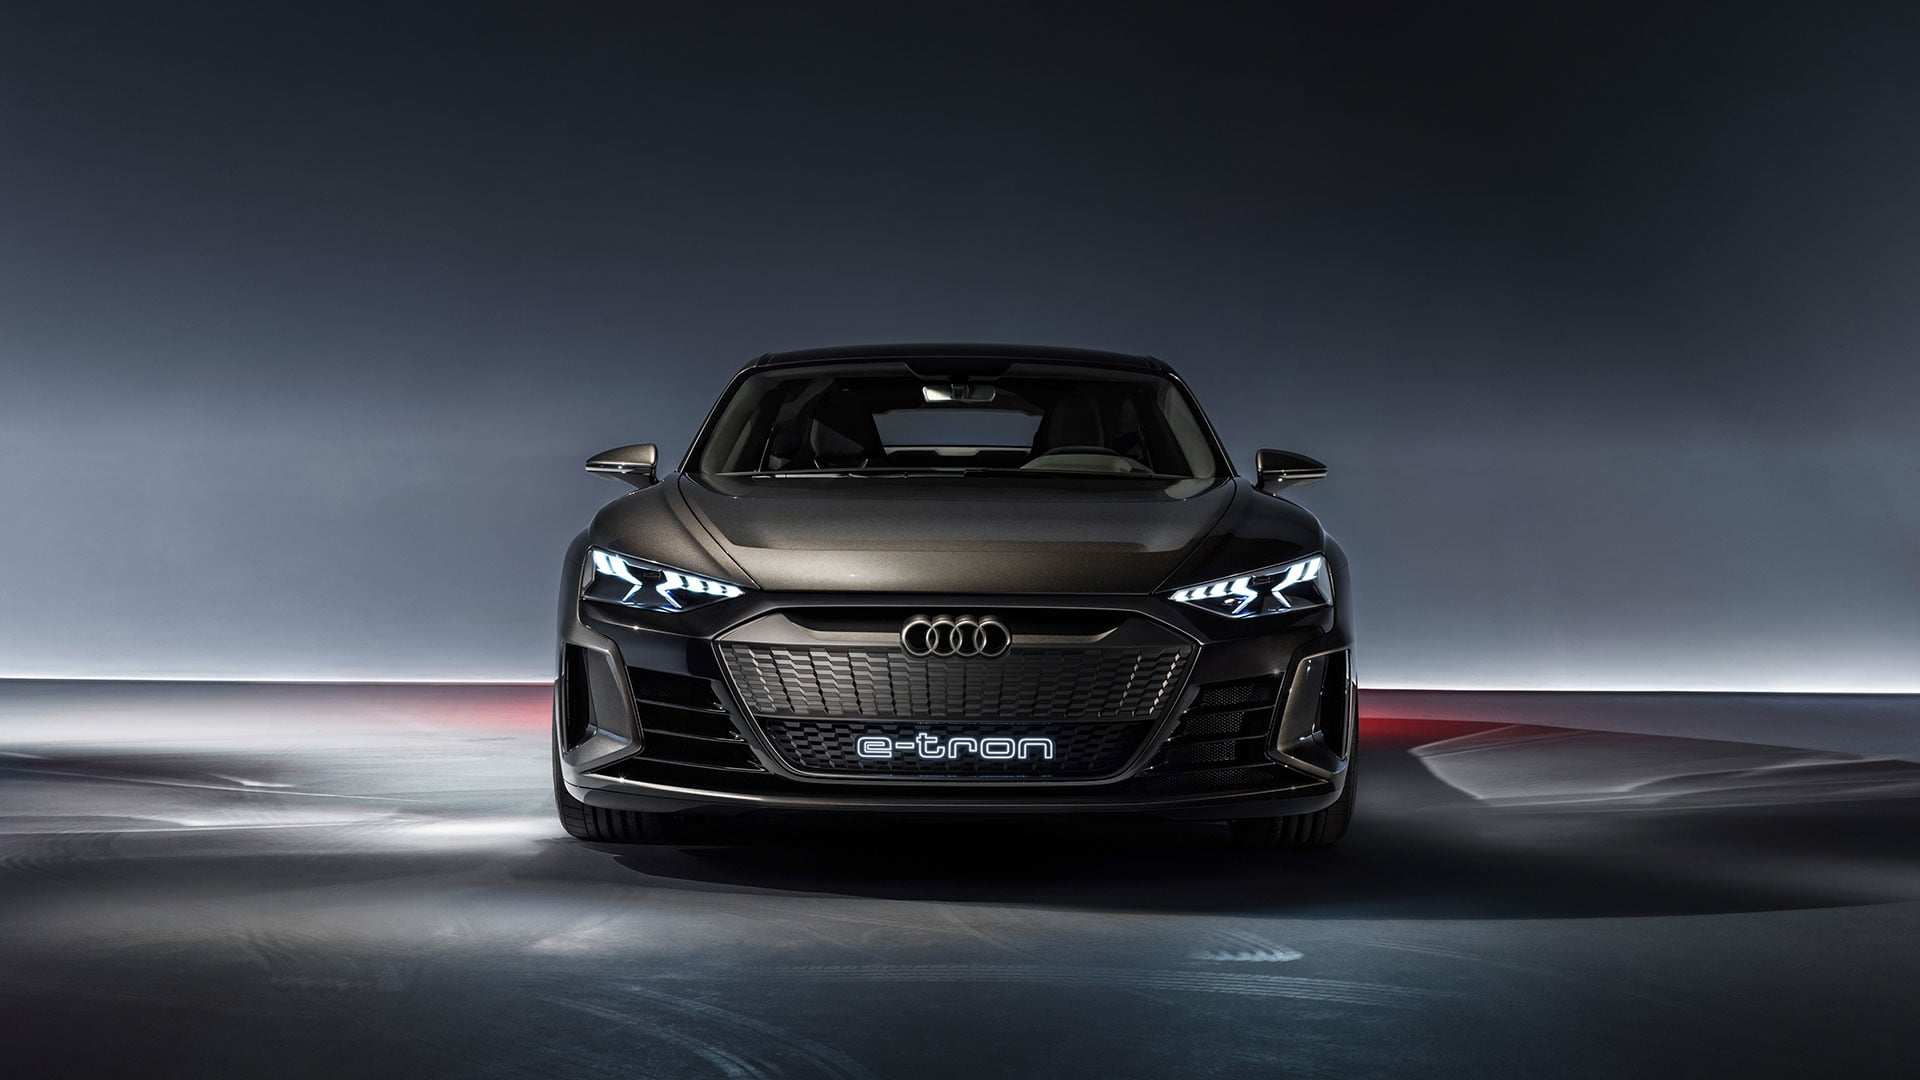 37 New 2020 Audi E Tron Gt Price for 2020 Audi E Tron Gt